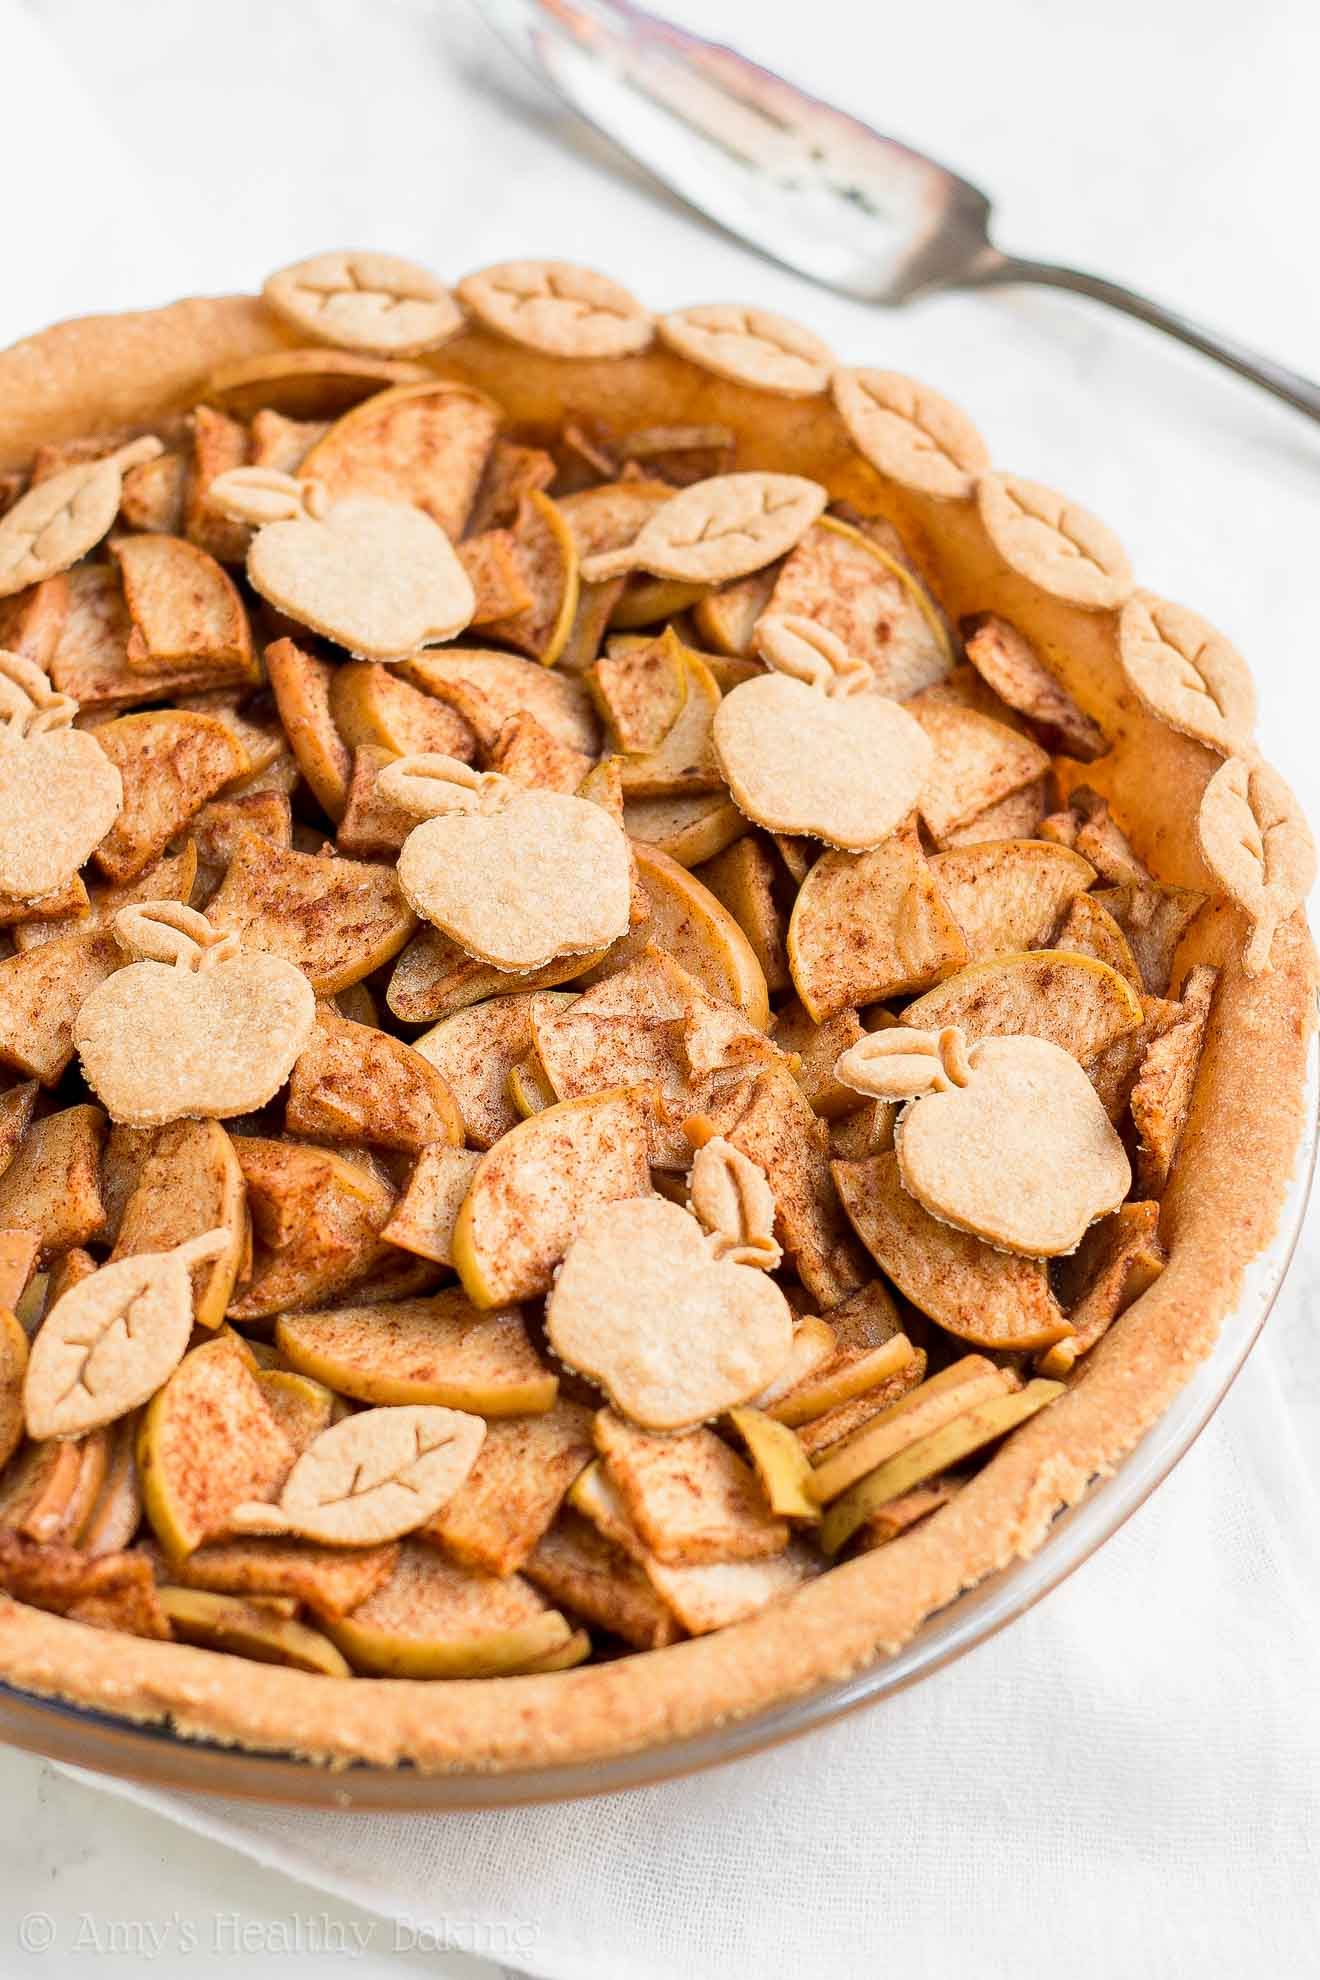 The ULTIMATE Healthy Homemade Clean Eating Apple Pie